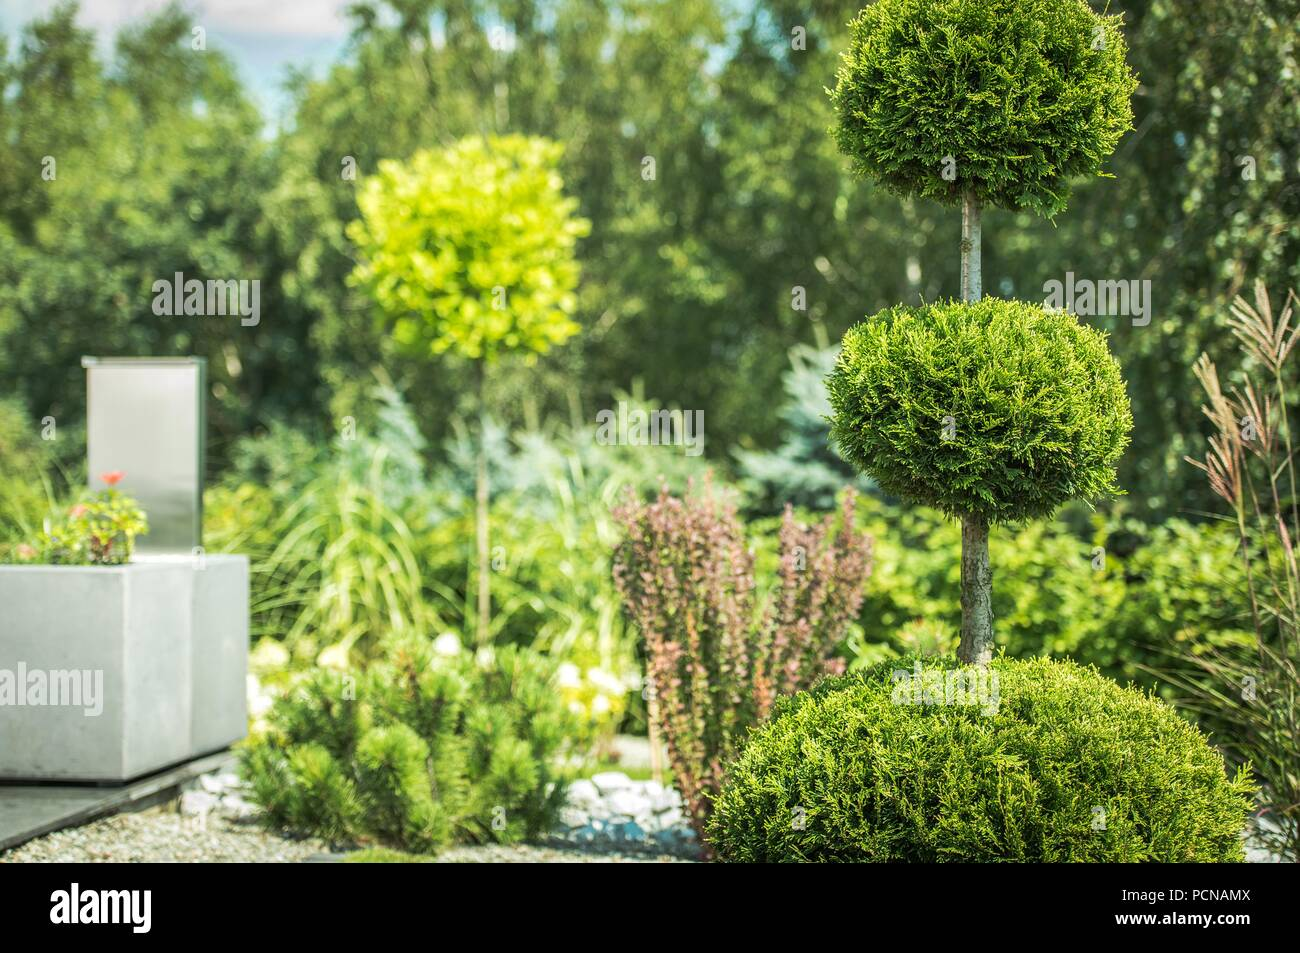 Topiary Art of Clipping Shrubs and Trees in the Garden. Sphered Thuja. Gardening Photo Theme. - Stock Image